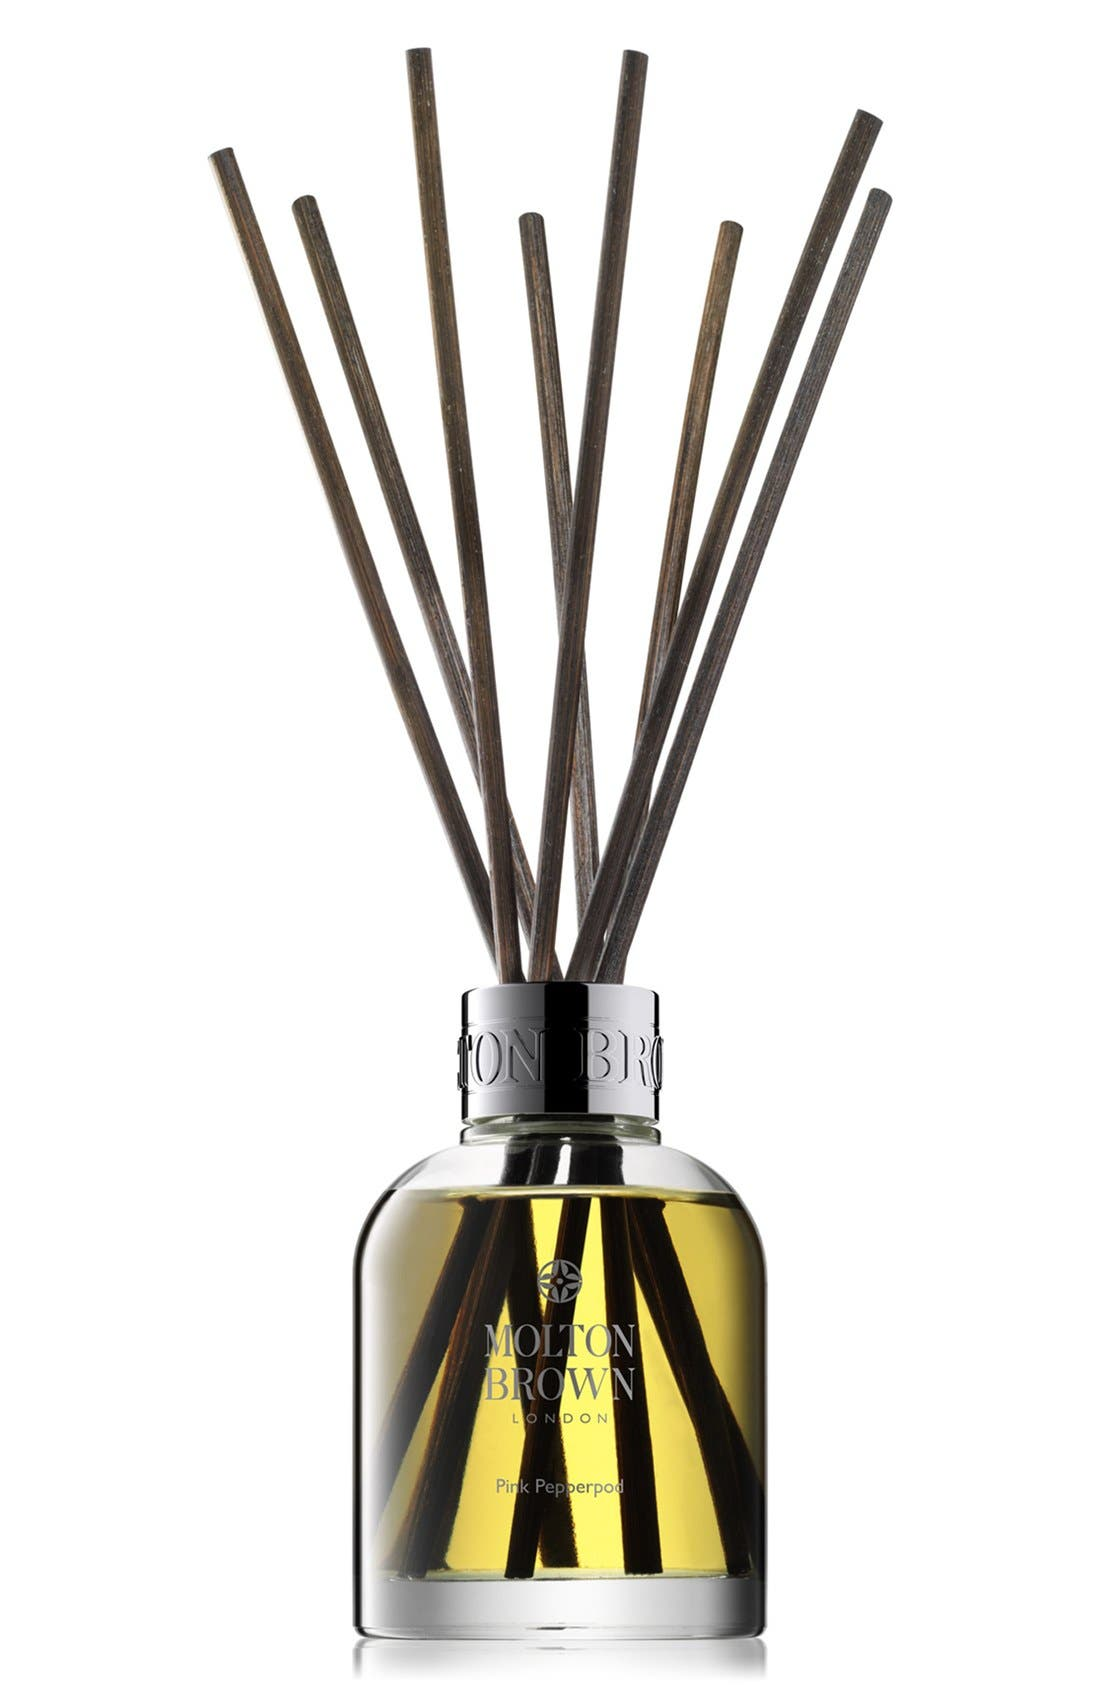 MOLTON BROWN London 'Pink Pepperpod' Aroma Reeds